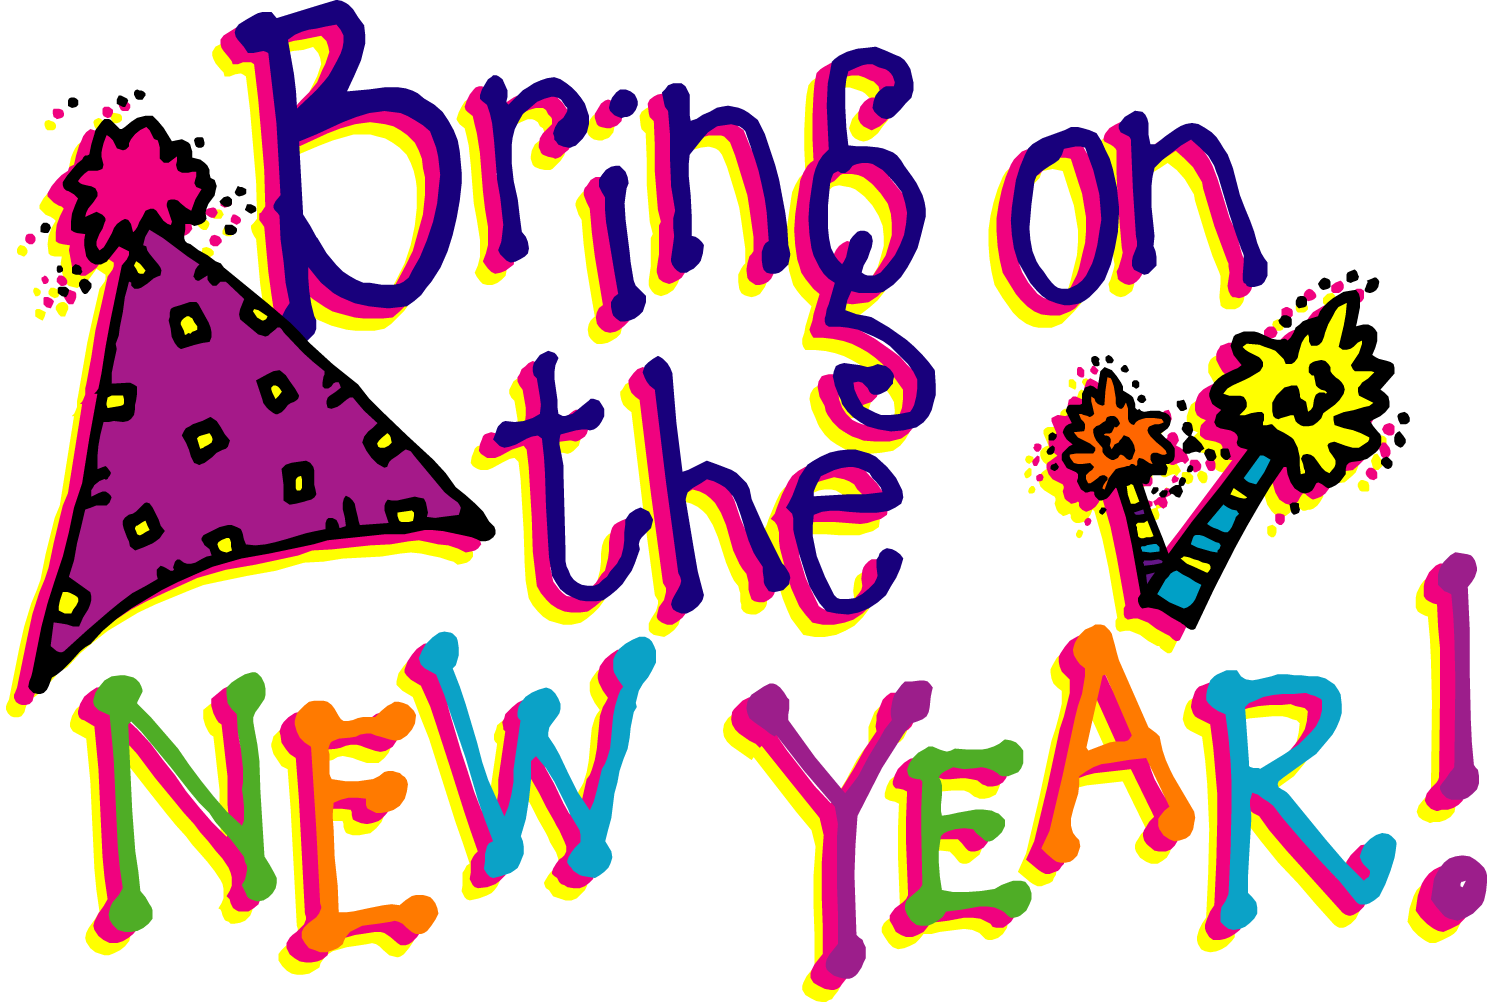 New Years Clip Art PG 1. Graphics And Or-New Years Clip Art PG 1. Graphics And Or Fonts .-4